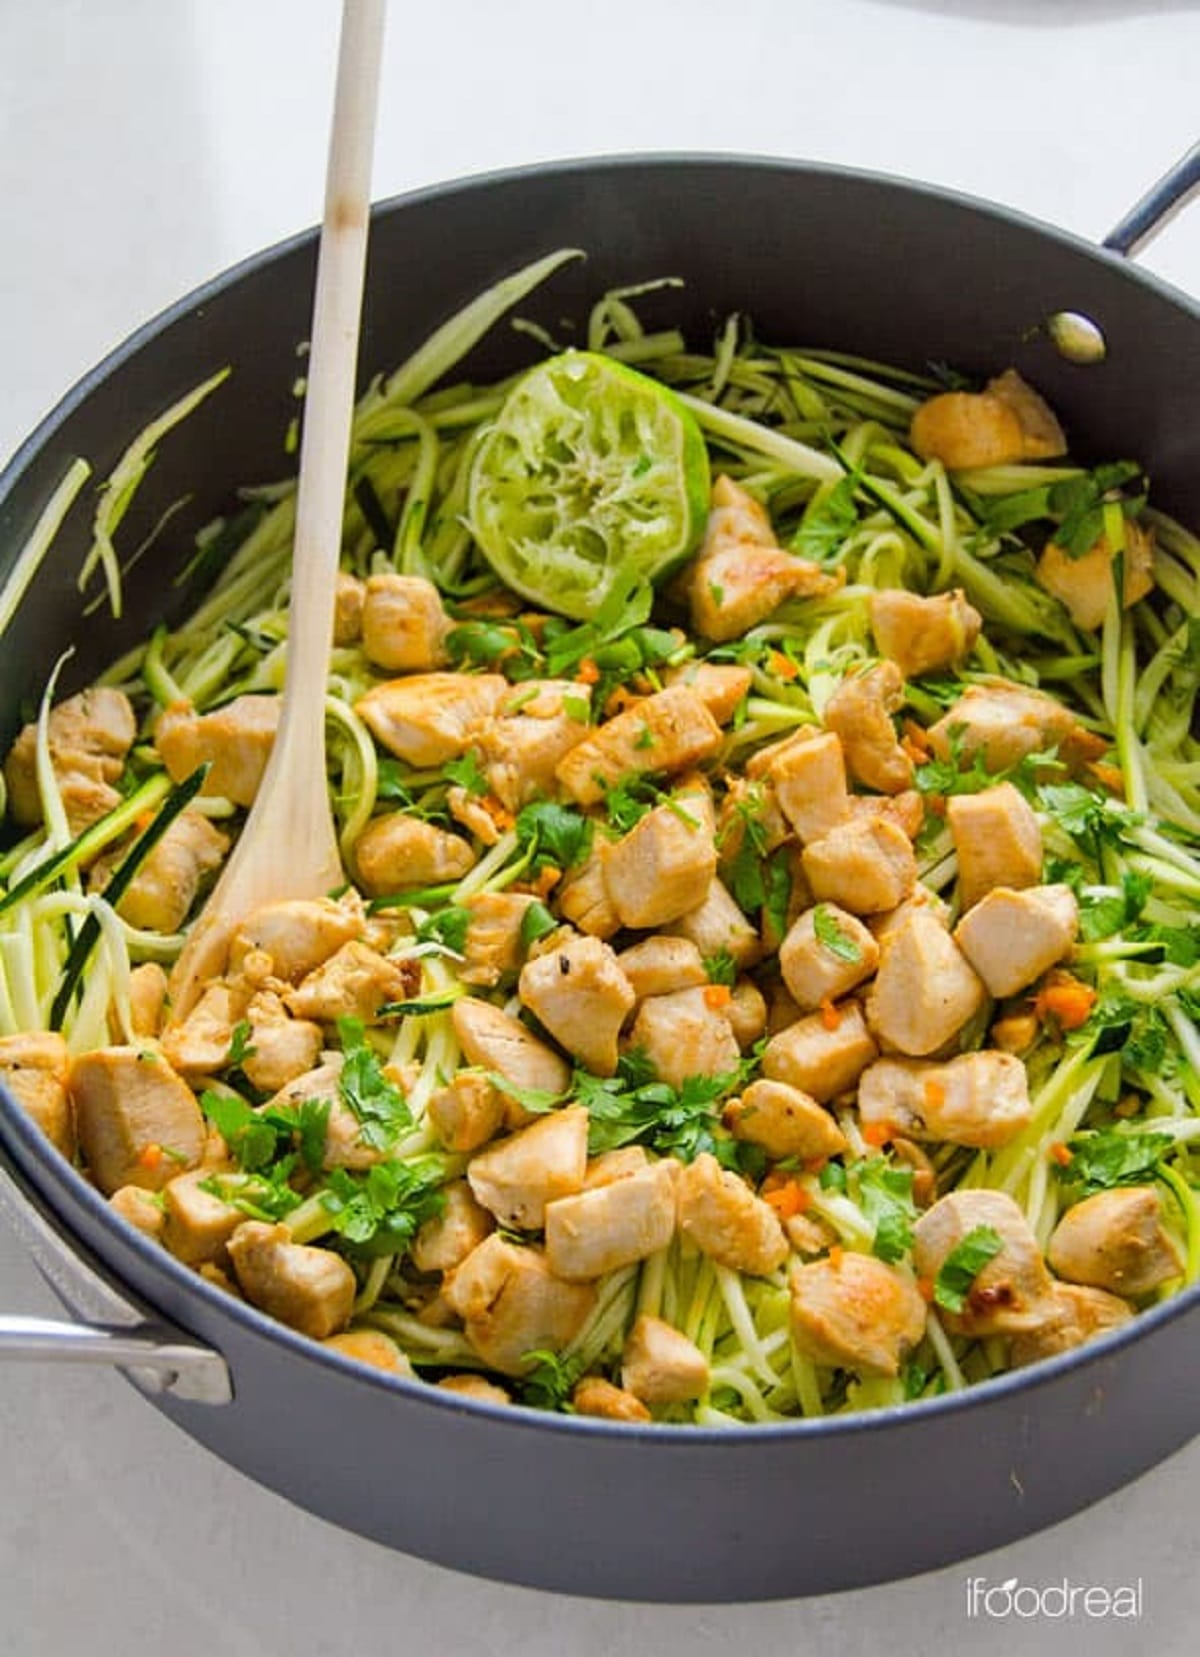 Zucchini Noodles with Chicken, Cilantro, and Lime